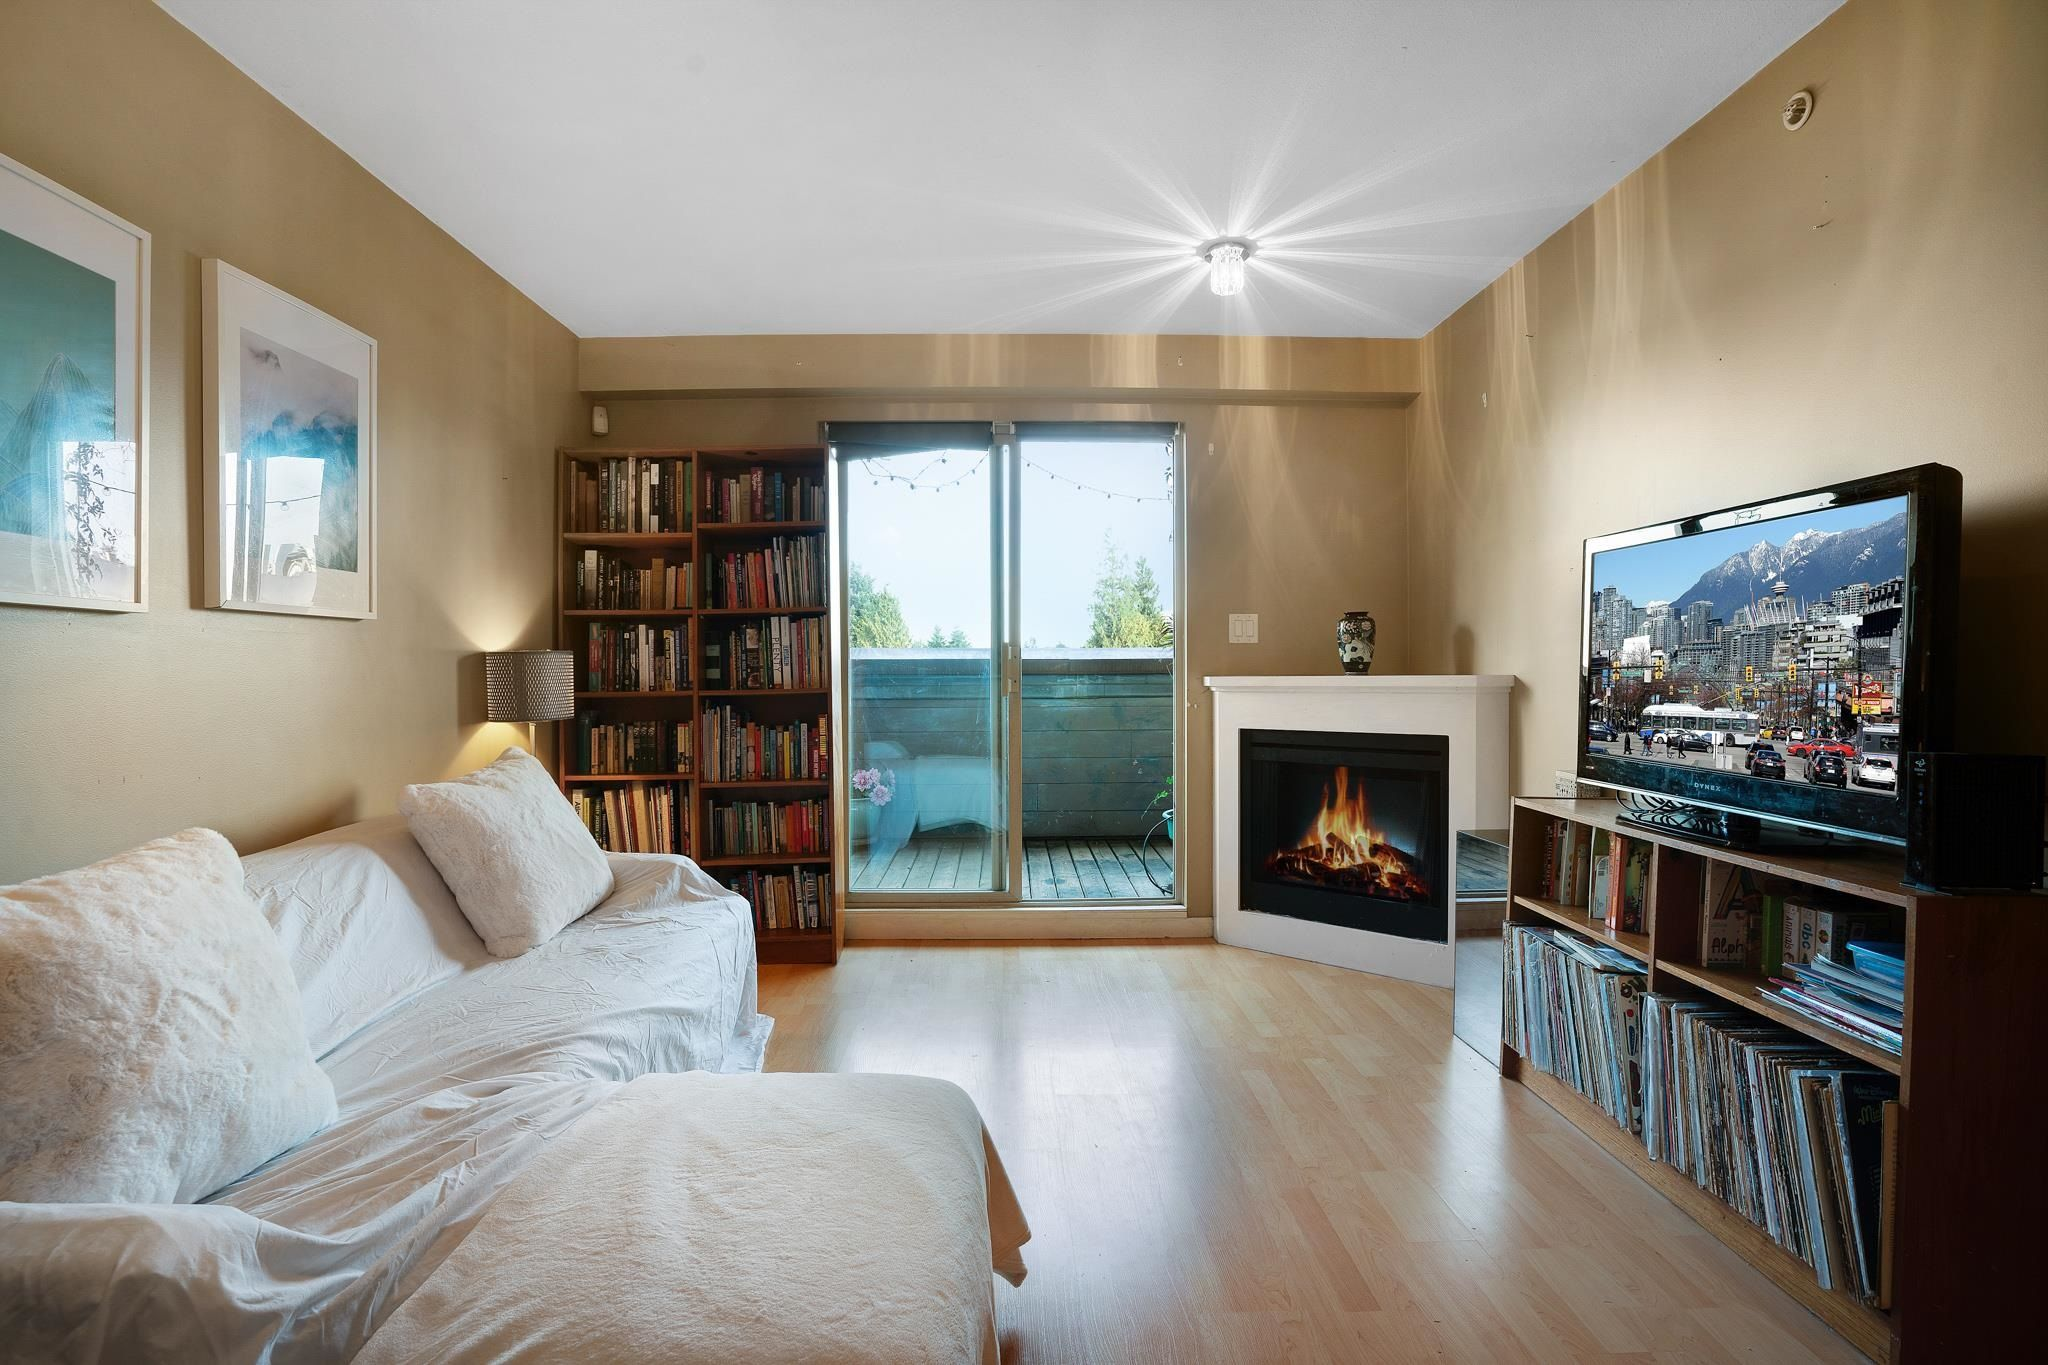 """Main Photo: PH5 3089 OAK Street in Vancouver: Fairview VW Condo for sale in """"The Oaks"""" (Vancouver West)  : MLS®# R2624819"""